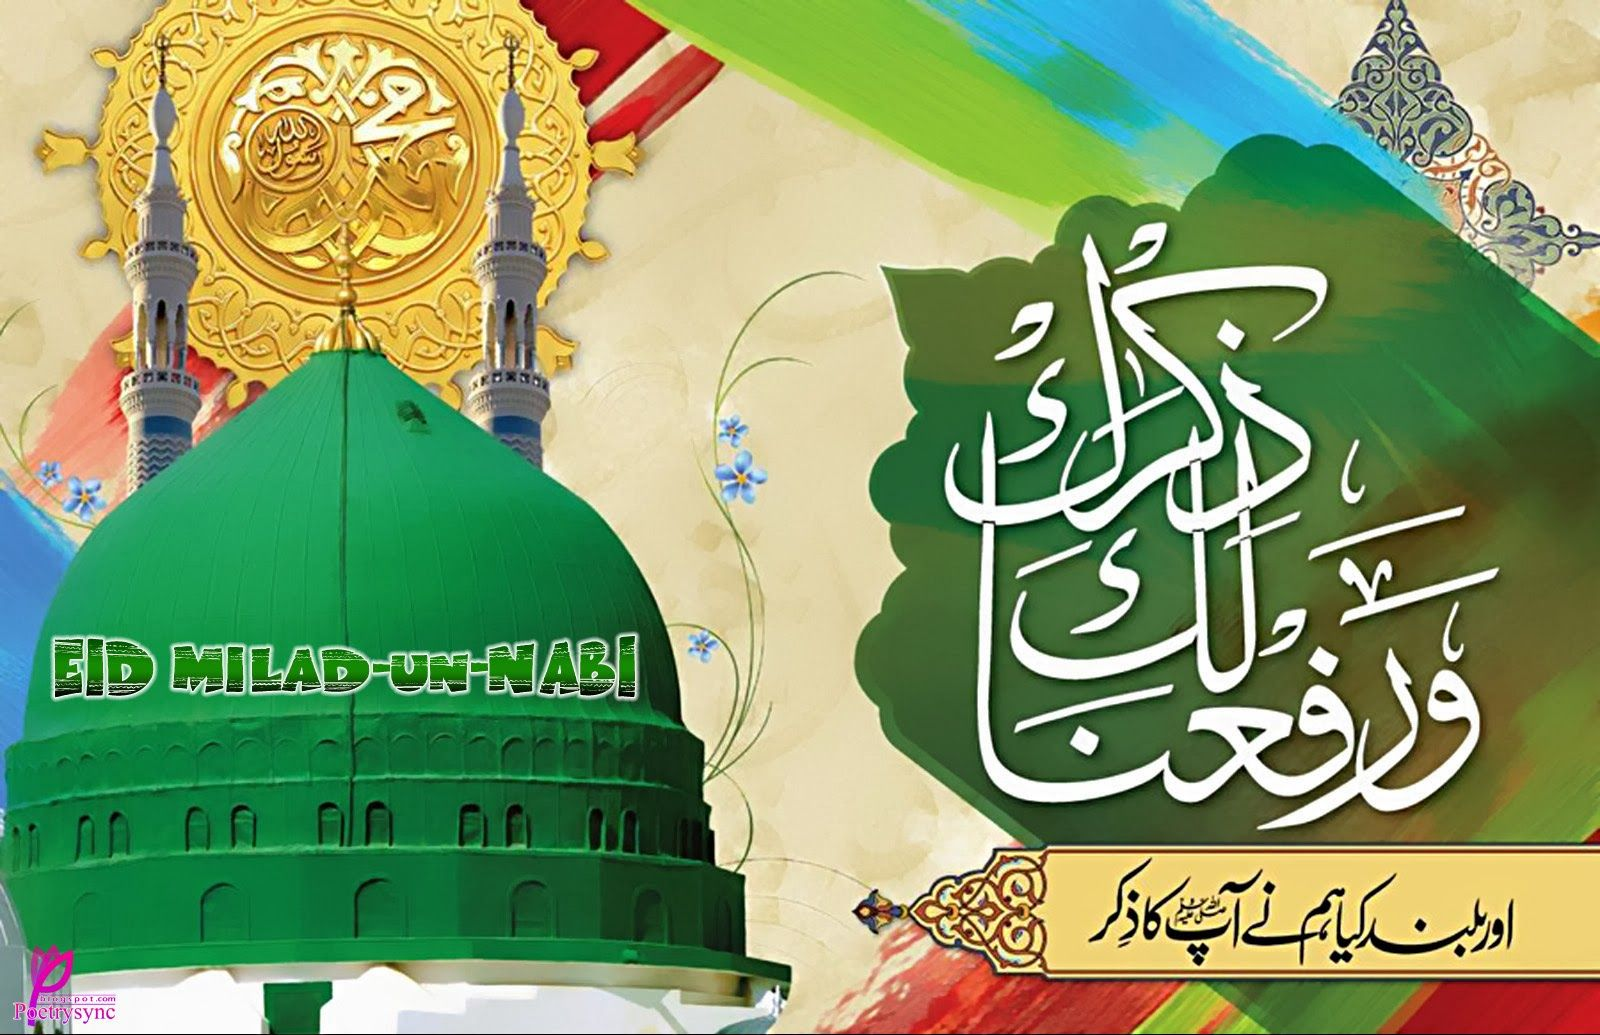 poetry jashn e eid milad un nabi hd wallpapers for facebook timeline and desktop eid milad un nabi eid milad milad un nabi jashn e eid milad un nabi hd wallpapers